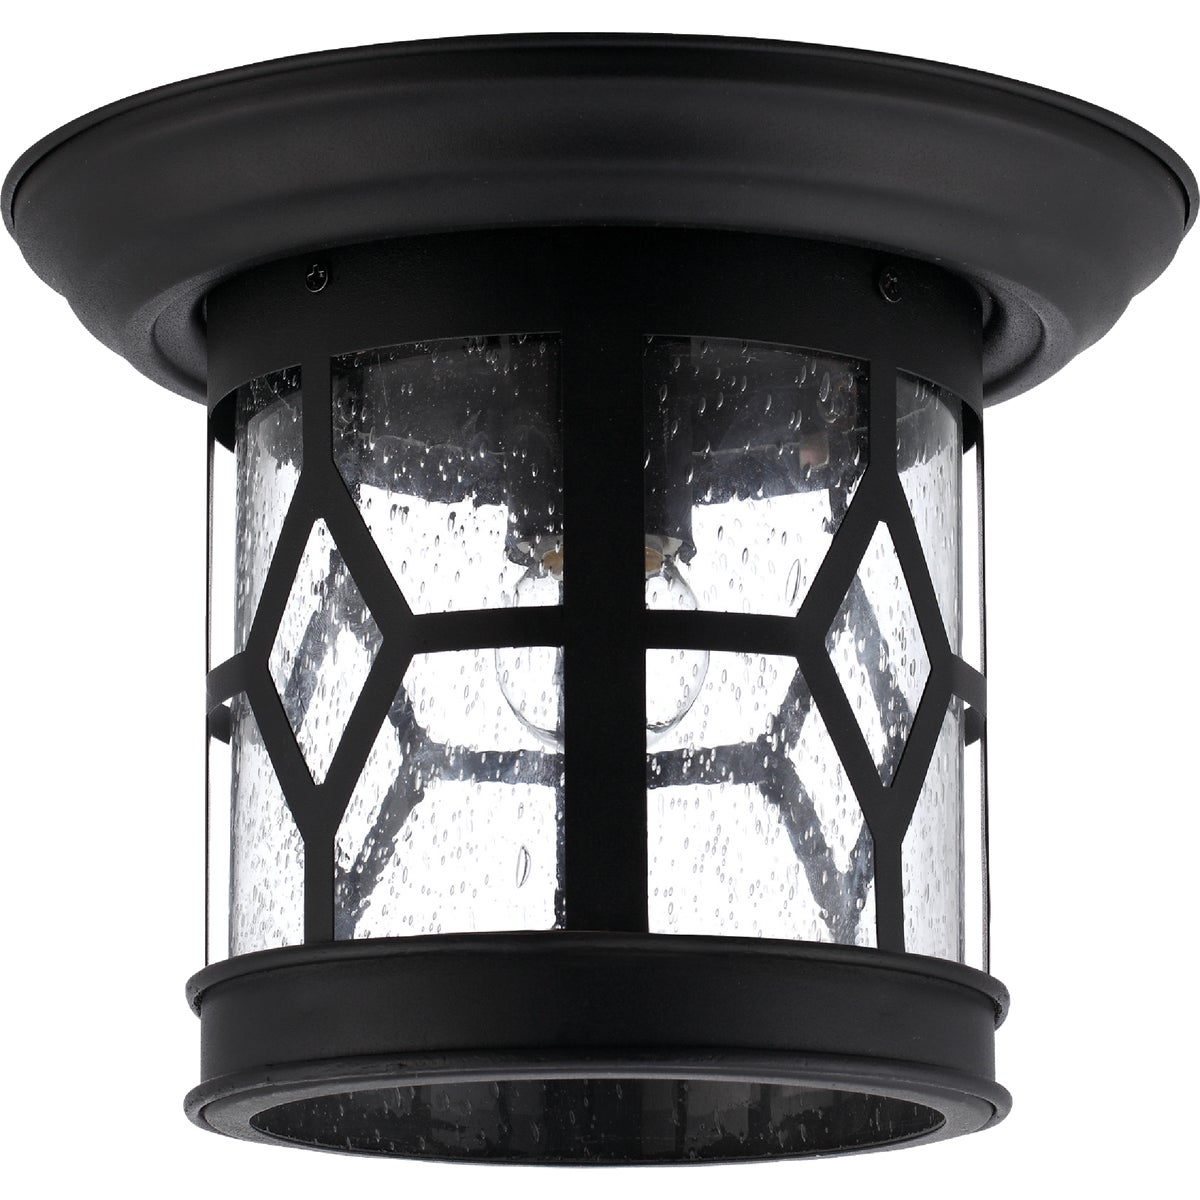 BLACK OUTDOOR LANTERN - IOL207BK by Canarm Gs